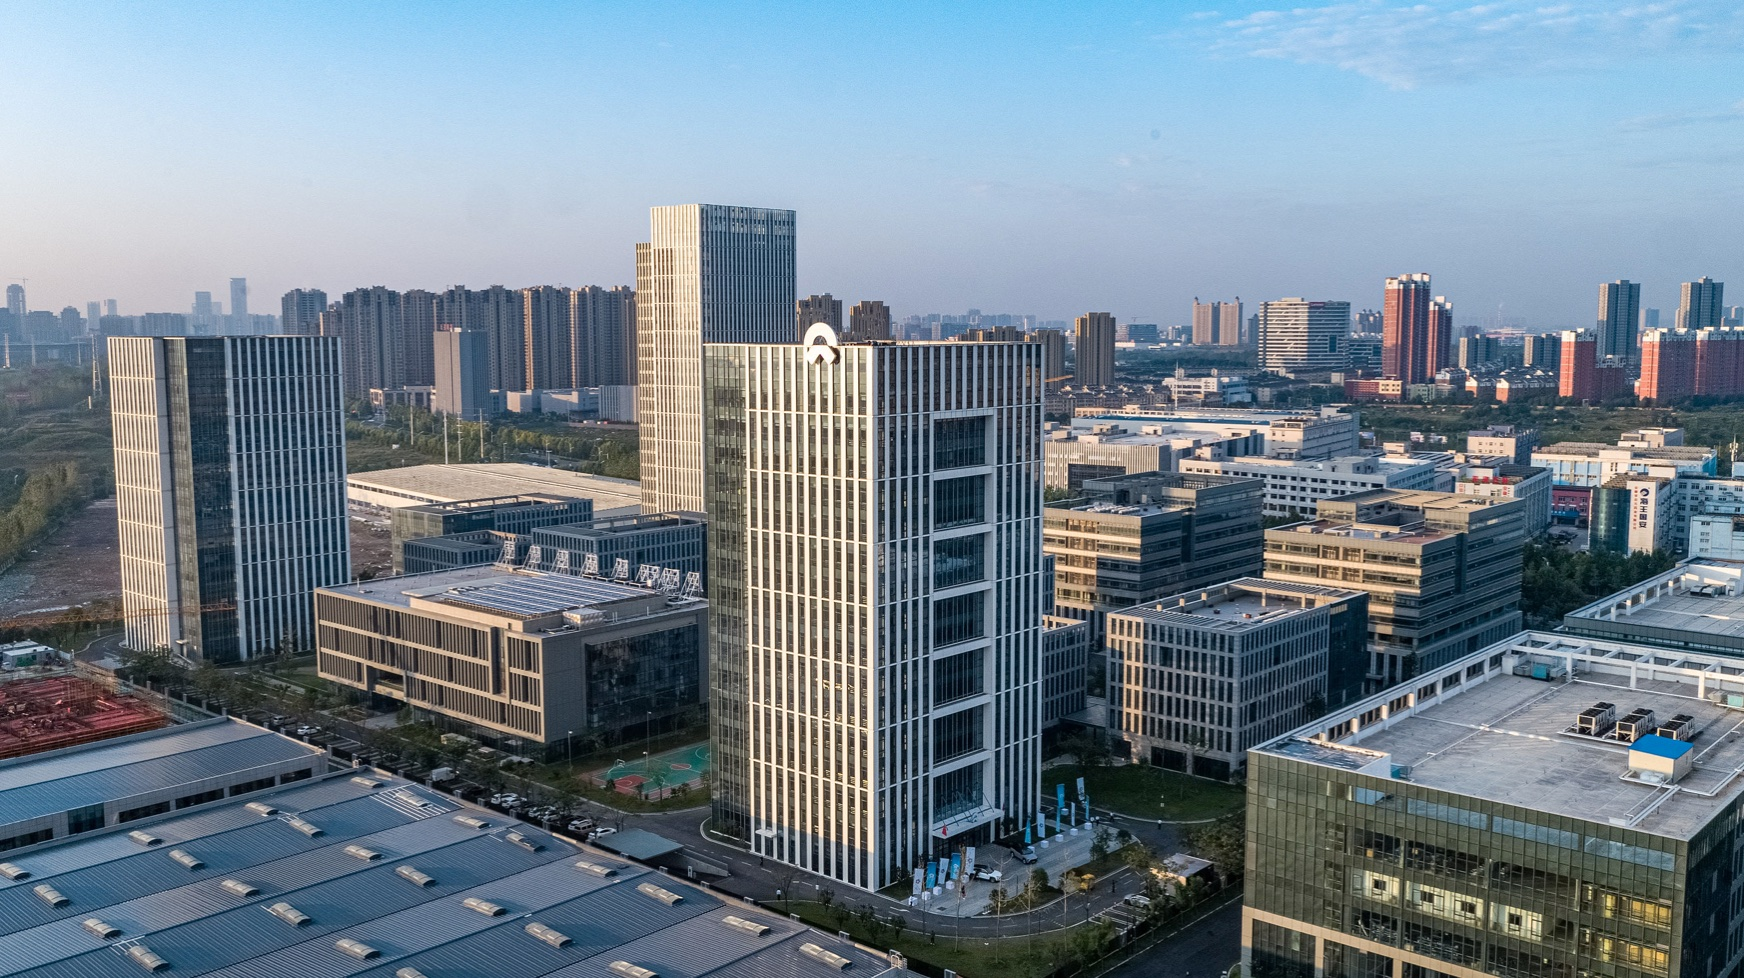 NIO gets policy boost from the city where its China headquarters is based-CnEVPost